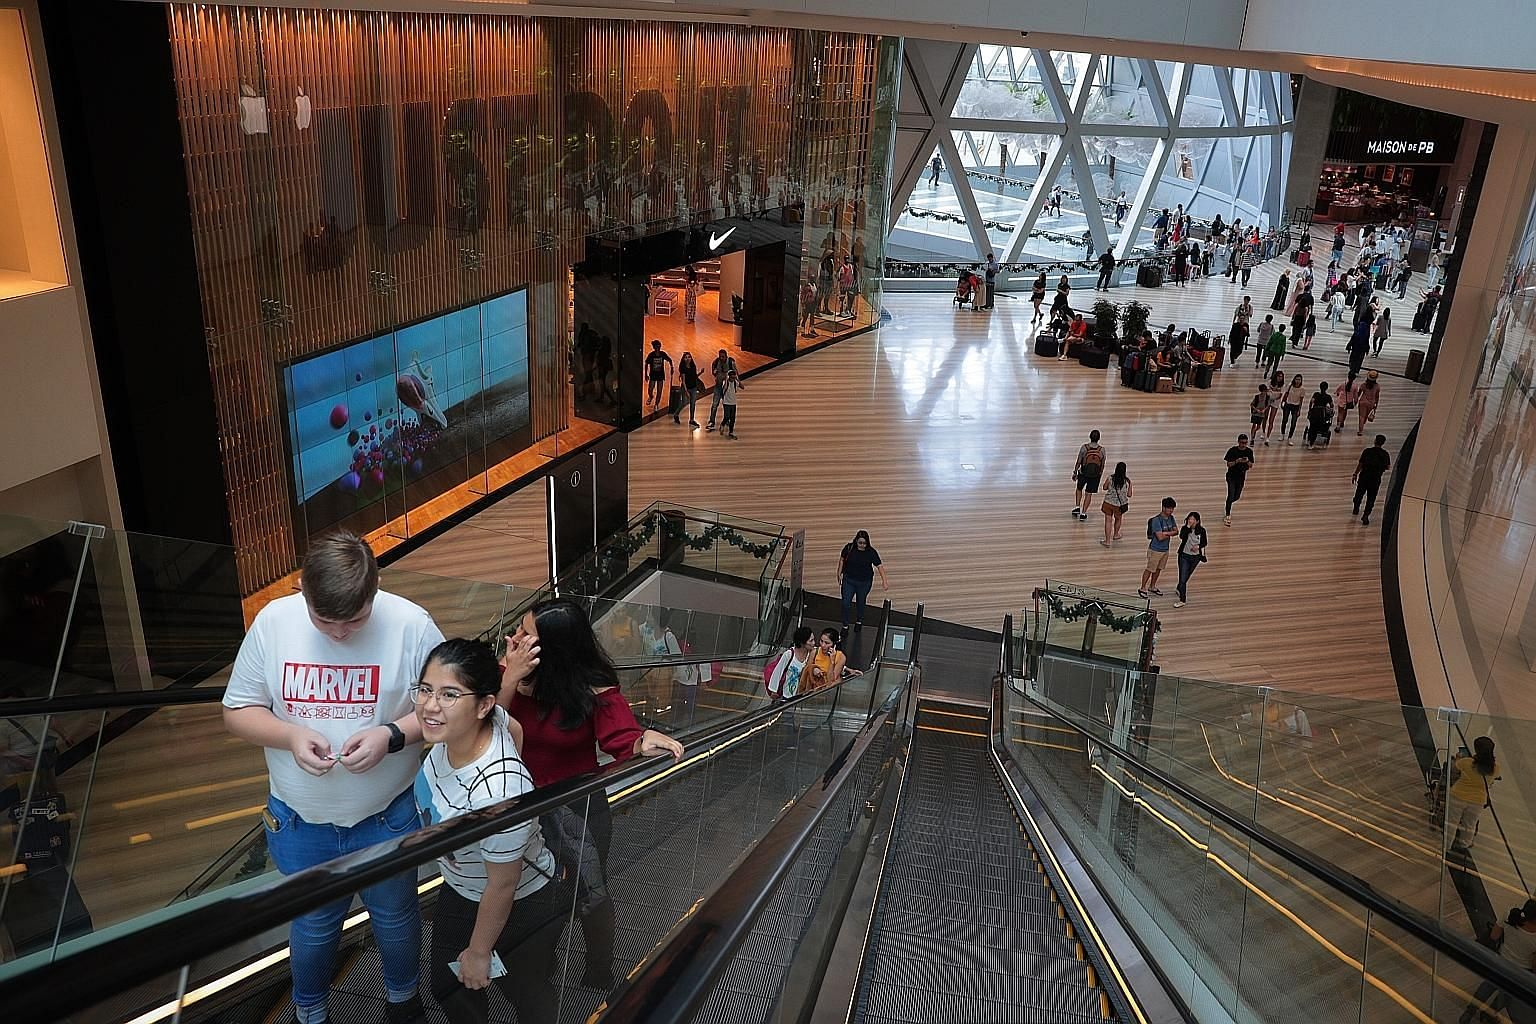 Stores at Jewel Changi Airport (left) that offer unique concepts or are exclusively located at Jewel seem to be doing better than retail chains that have multiple outlets in more accessible areas of Singapore.